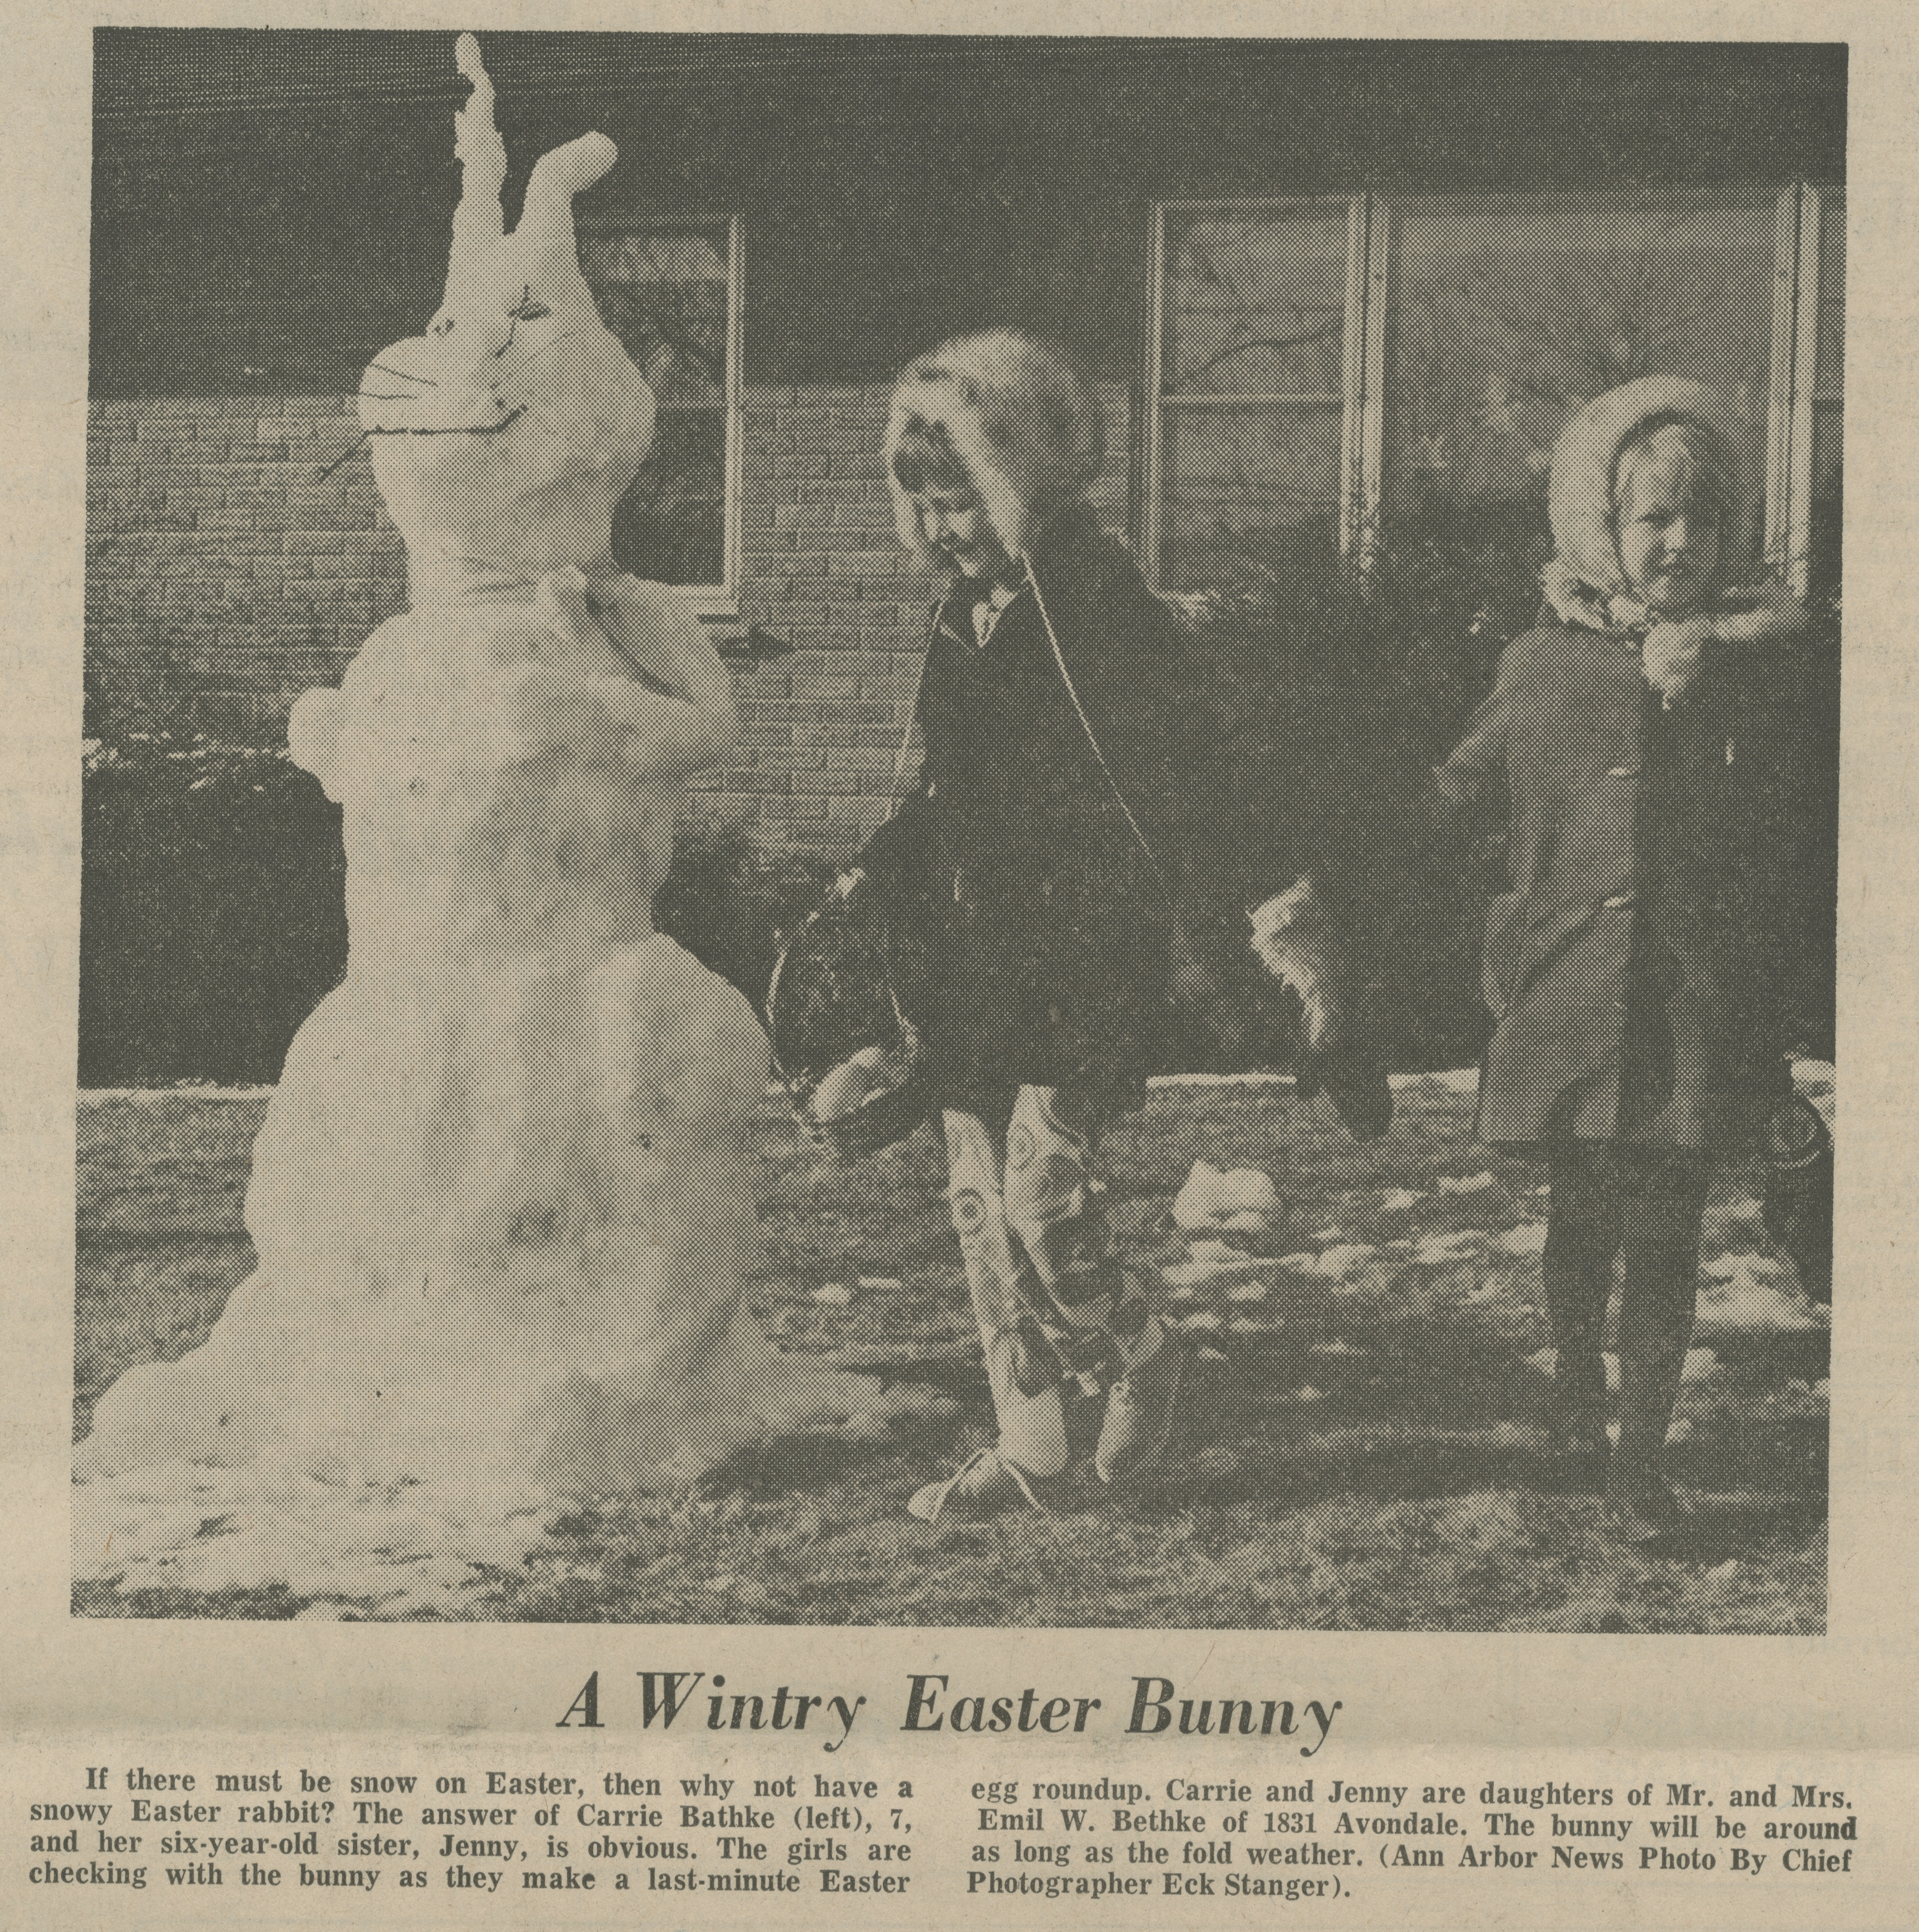 A Wintry Easter Bunny image